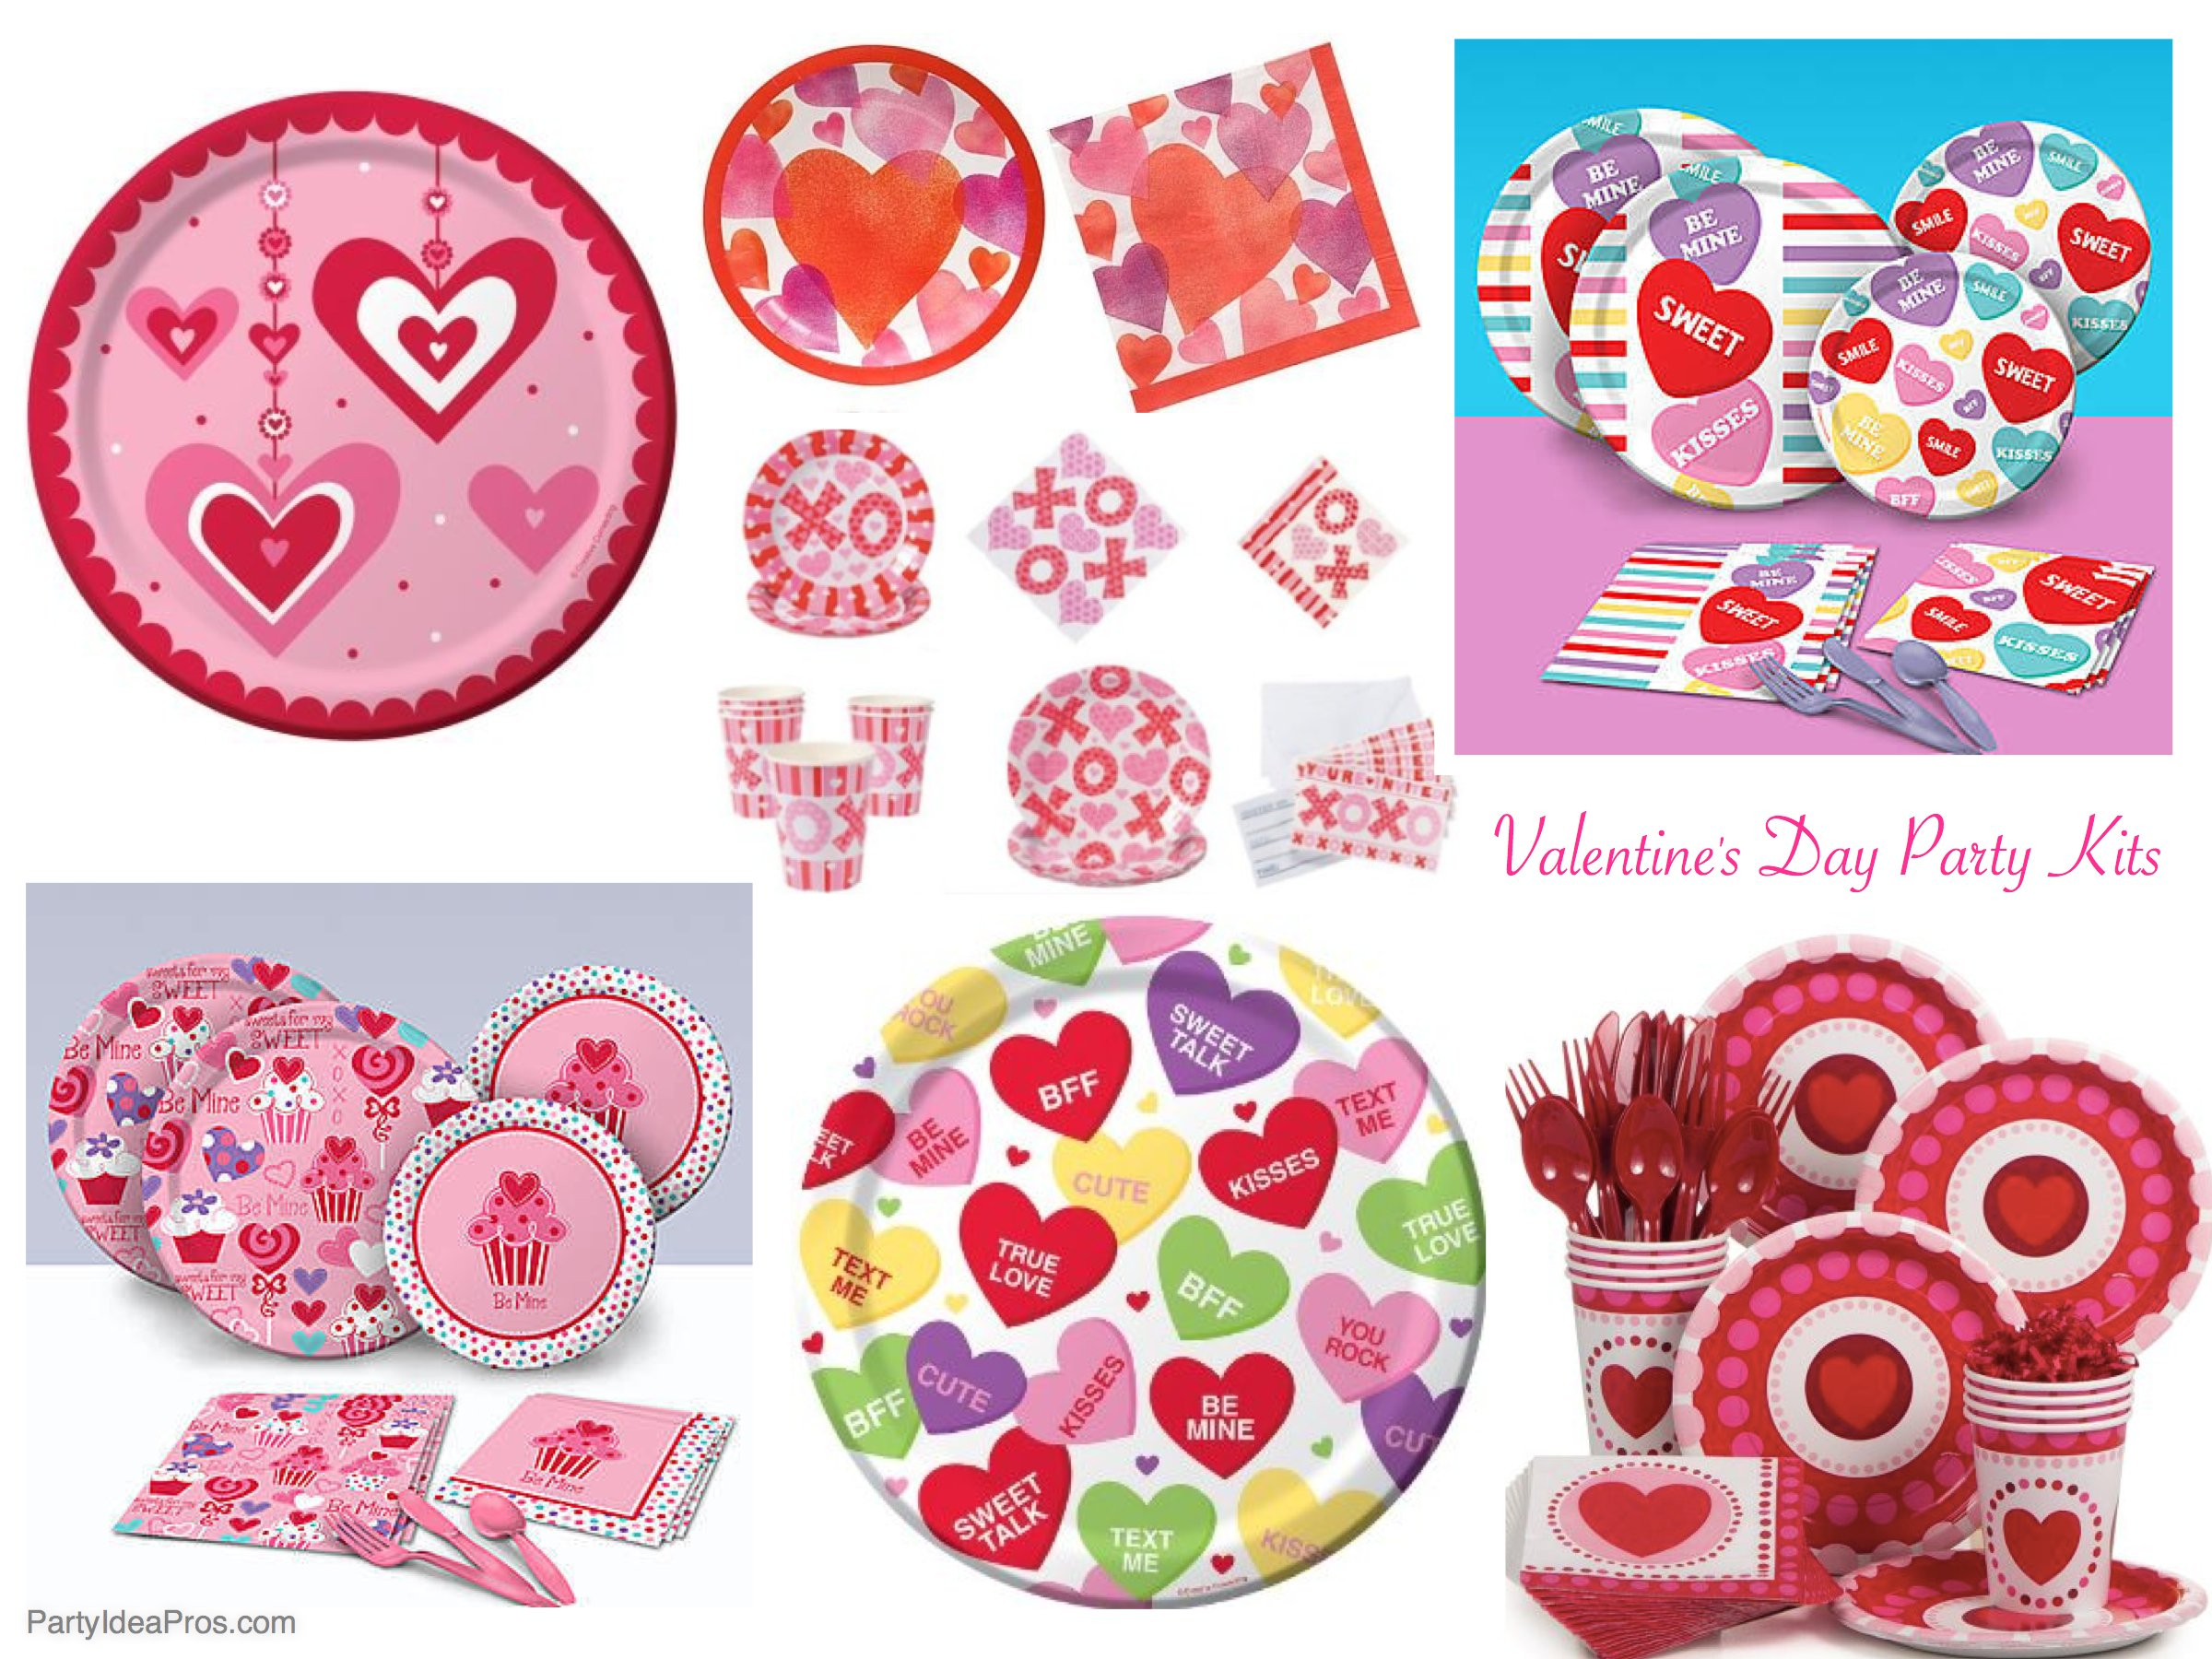 Best Valentines Day Party Kits, Valentine's Day Party Plates